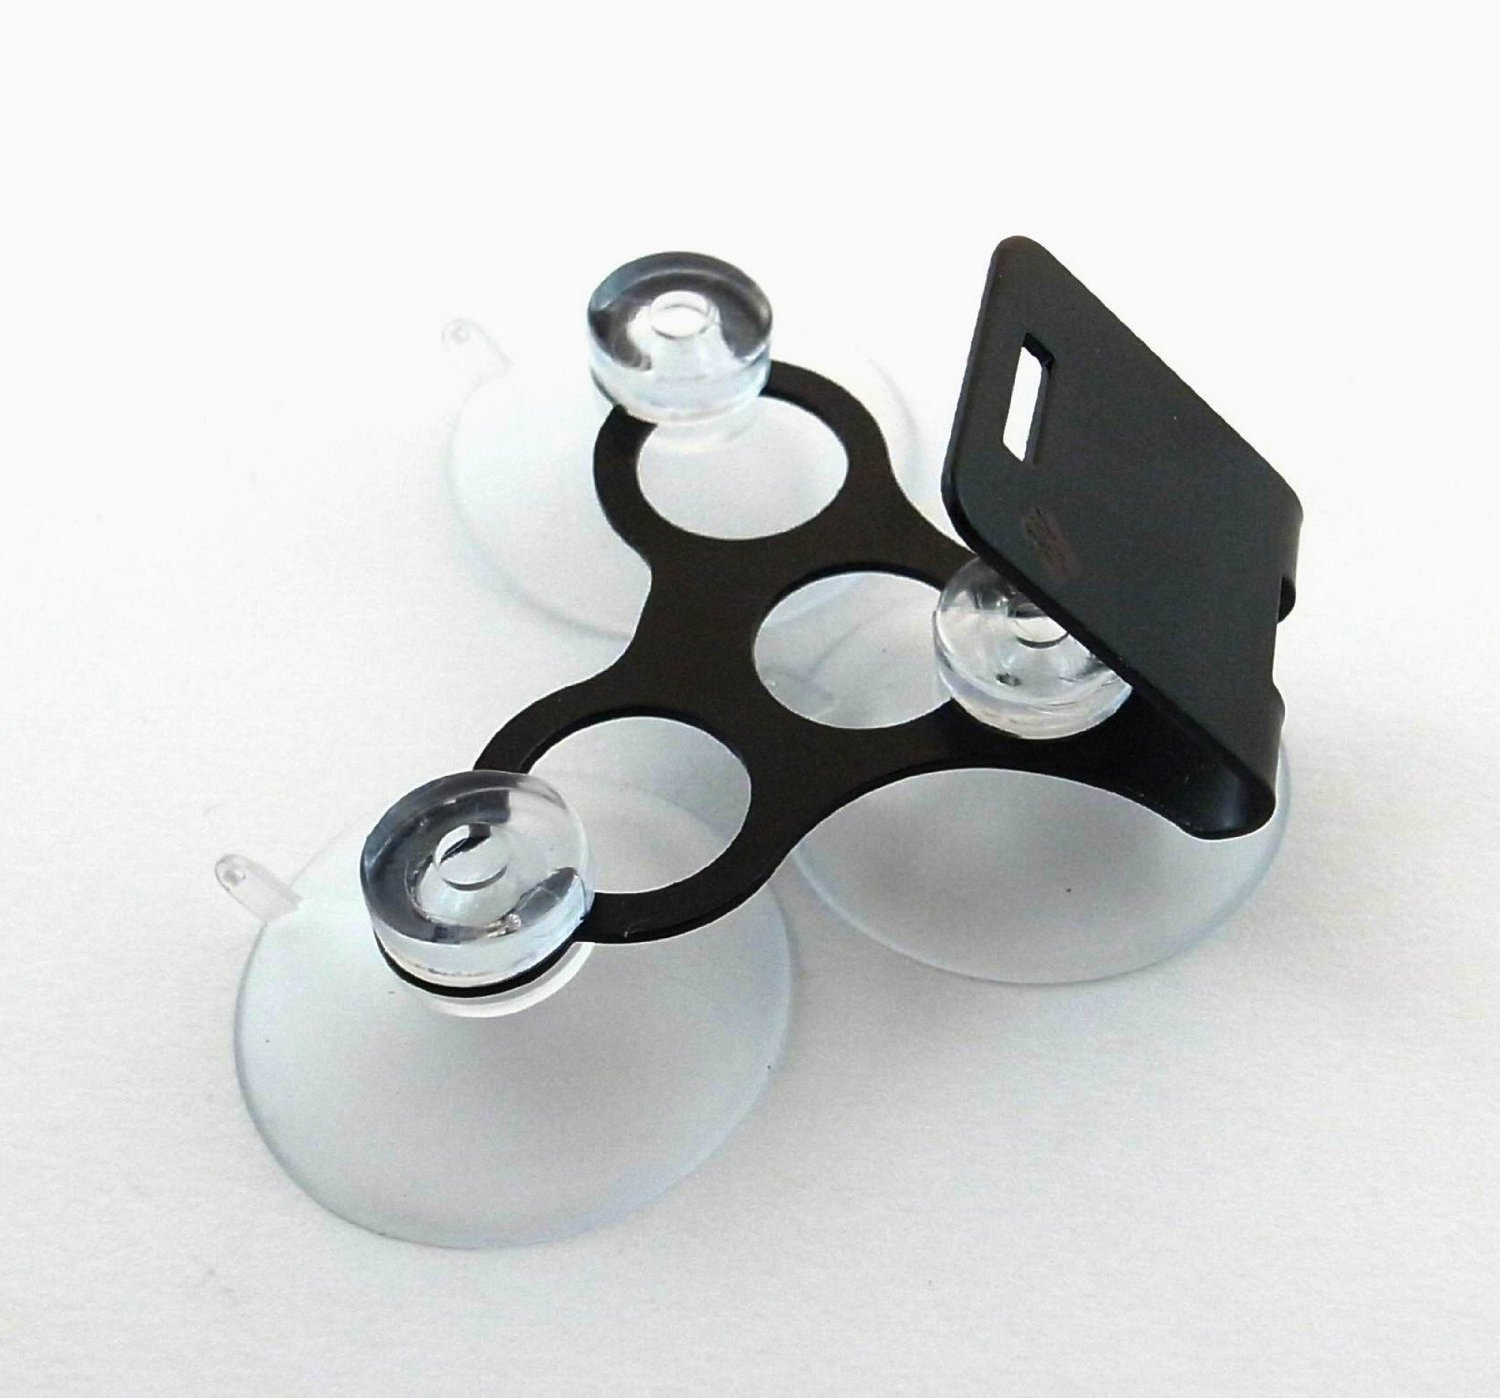 Set of 2 Brackets for Cobra Detector Bracket W/ 3 suction Cups for Cobra XRS9300, XRS9400, XRS9500